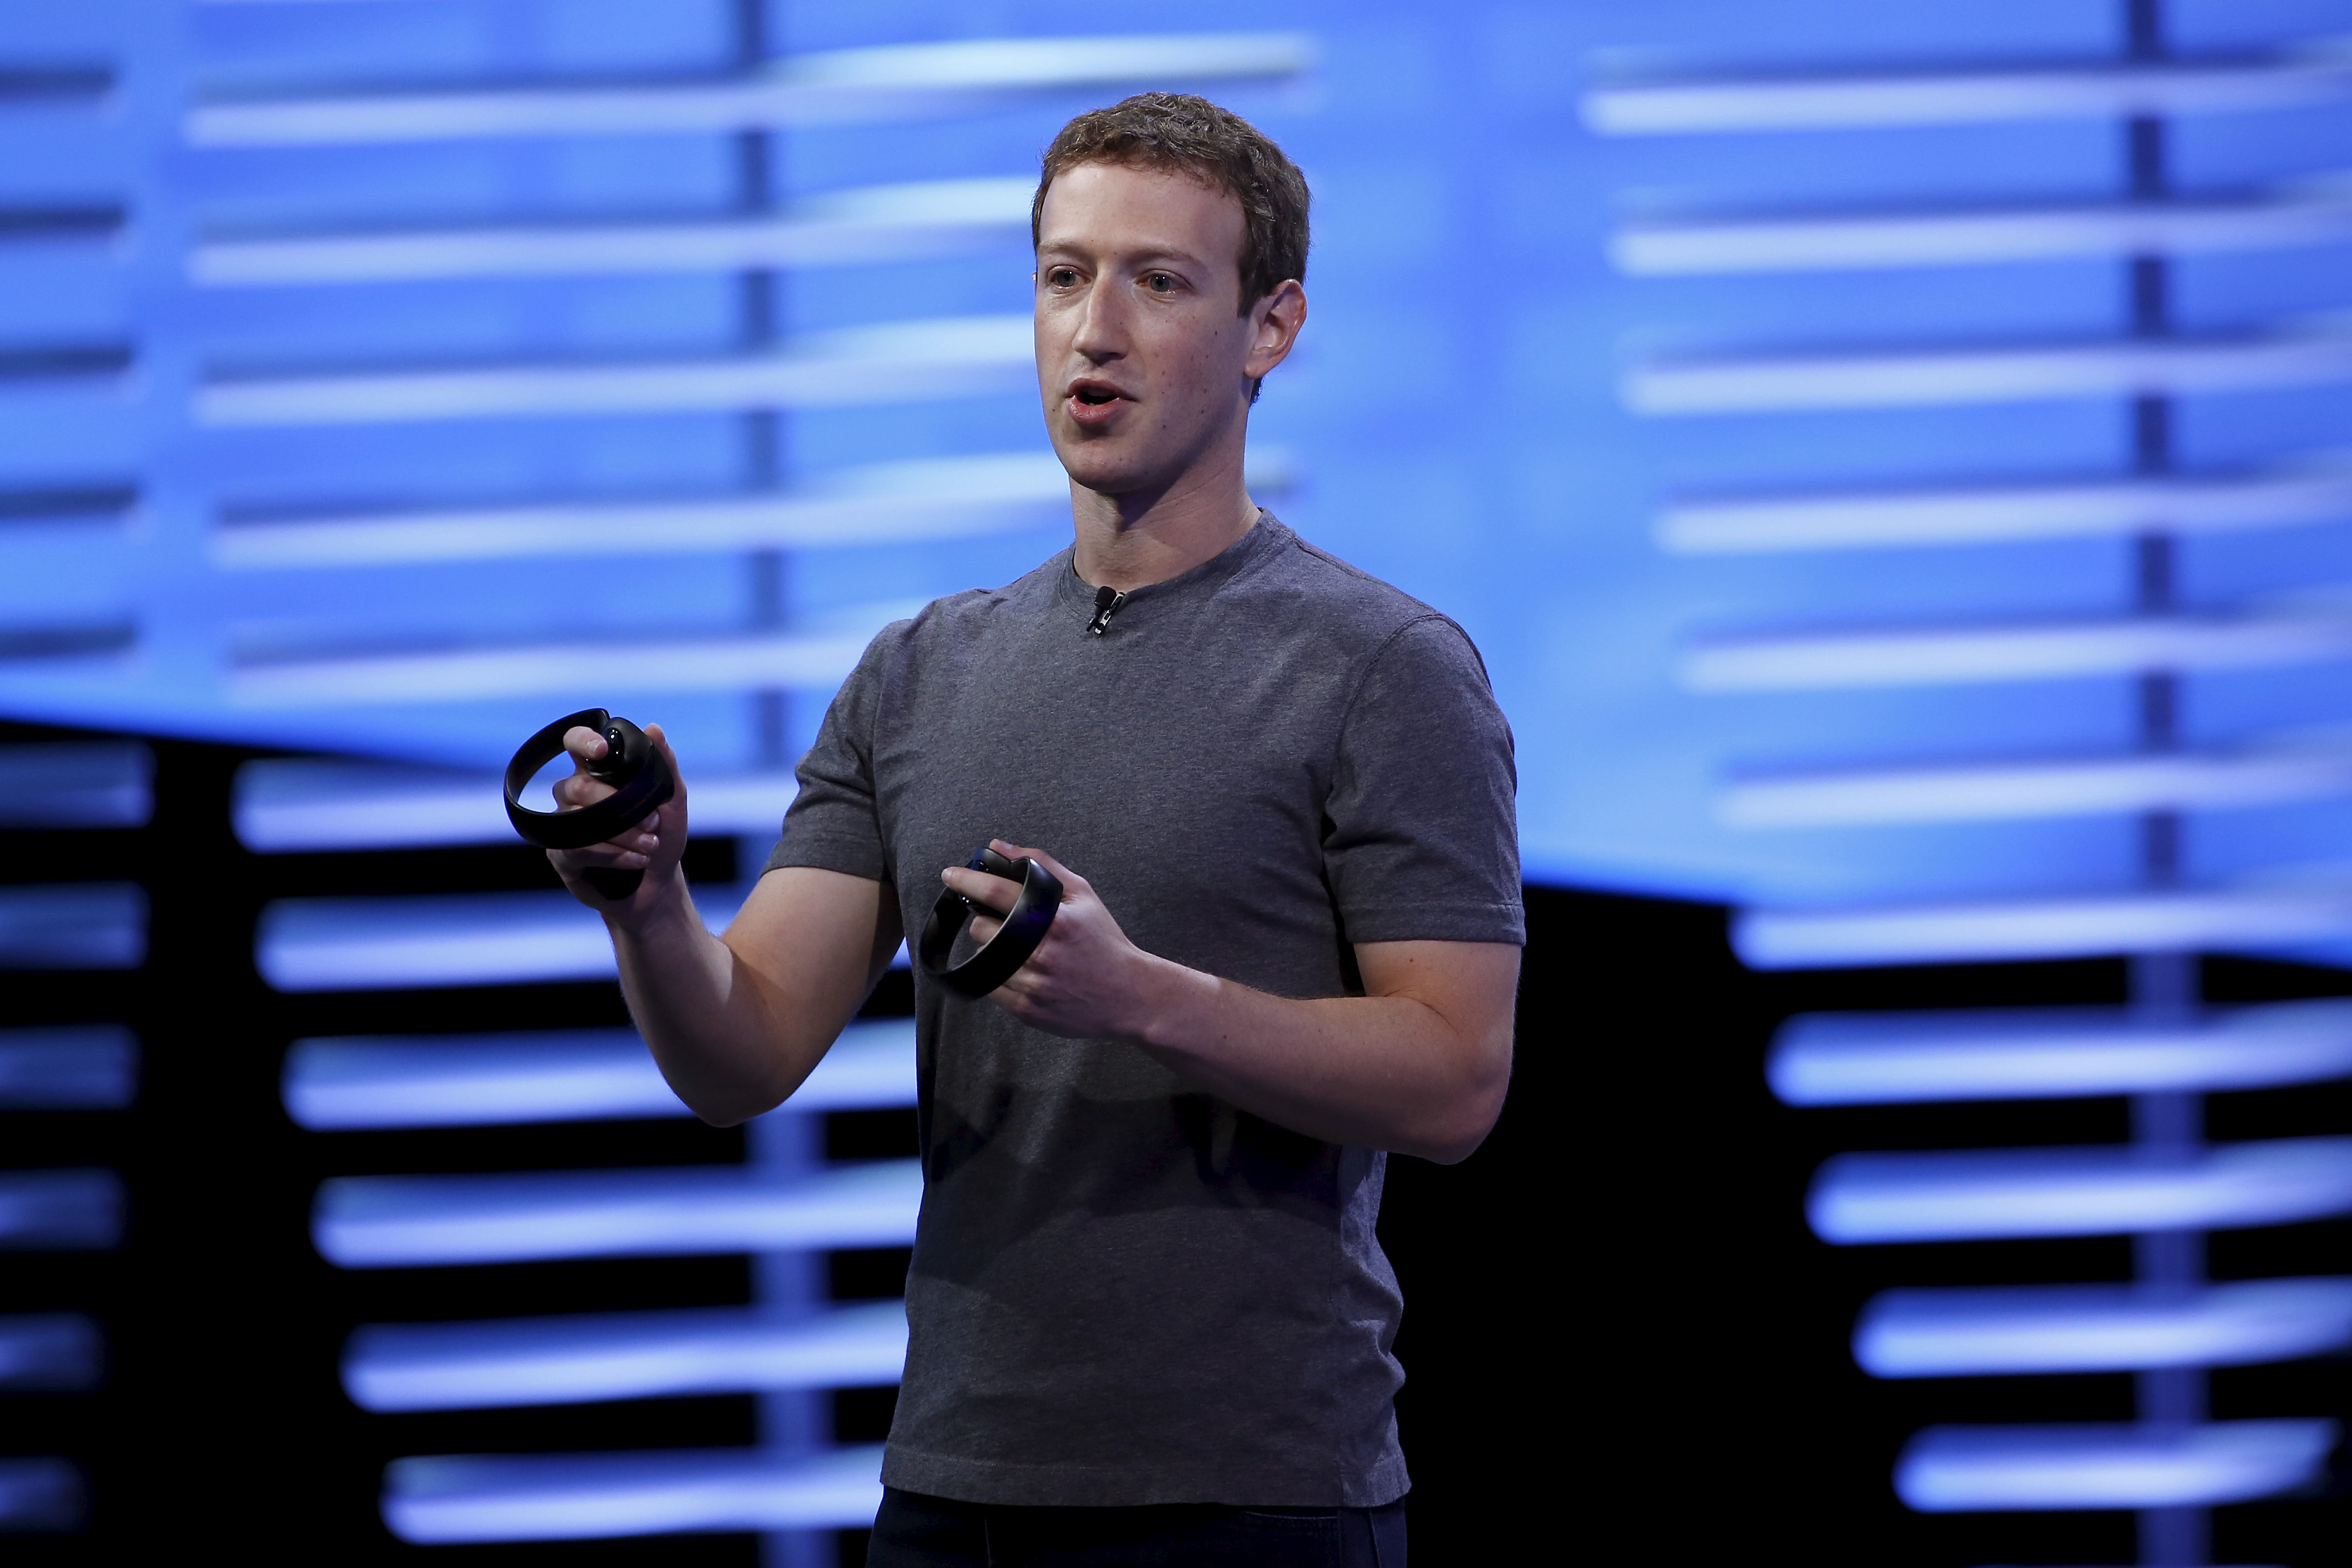 Facebook CEO Mark Zuckerberg holds a pair of the touch controllers for the Oculus Rift virtual reality headsets during the Facebook F8 conference in San Francisco, California